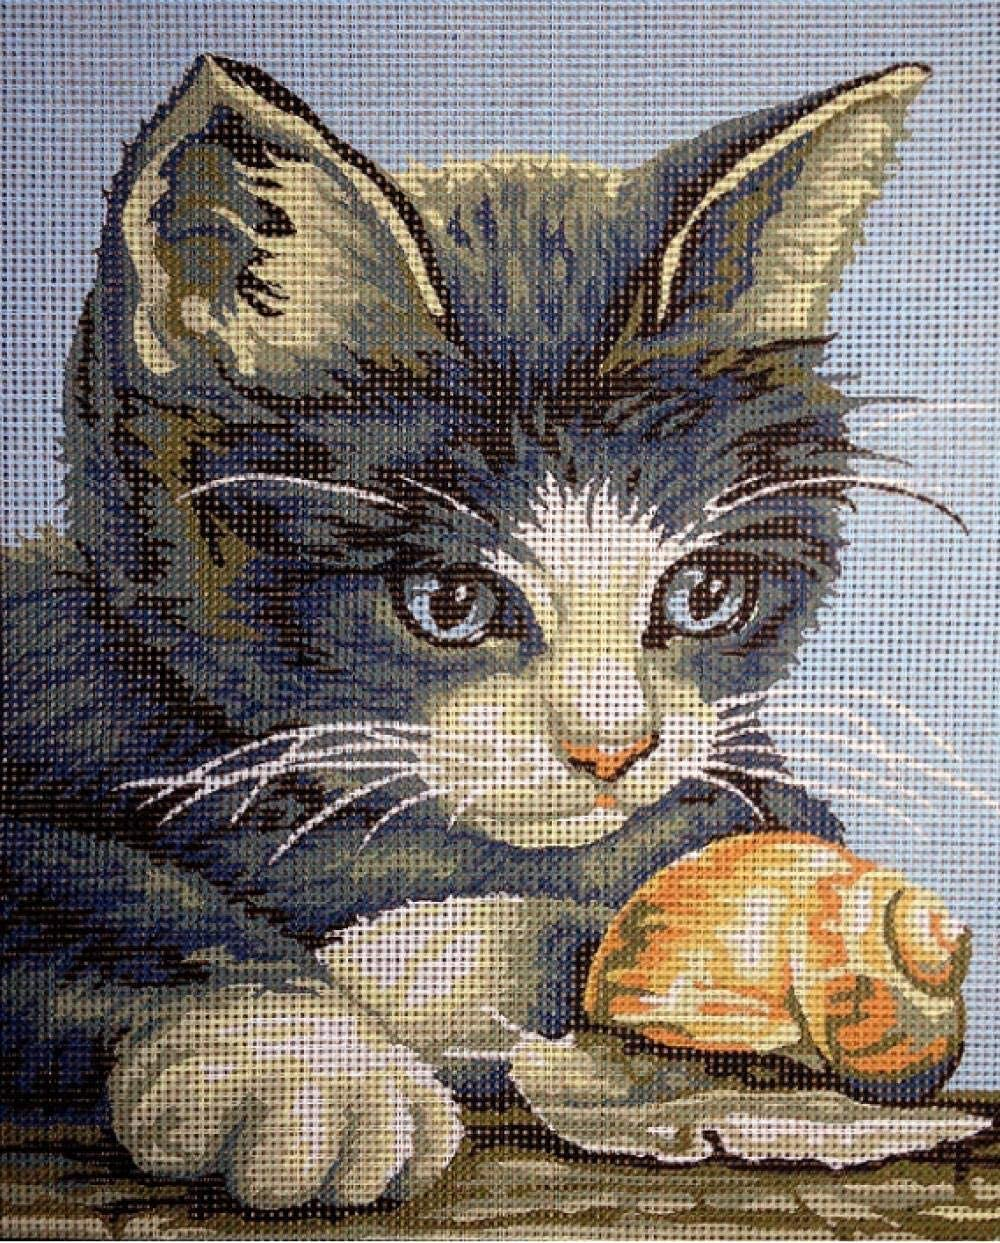 BaiJaC Needlepoint Sewing Ranking Clearance SALE! Limited time! TOP6 kit Tapestry with Cat Embroidery S